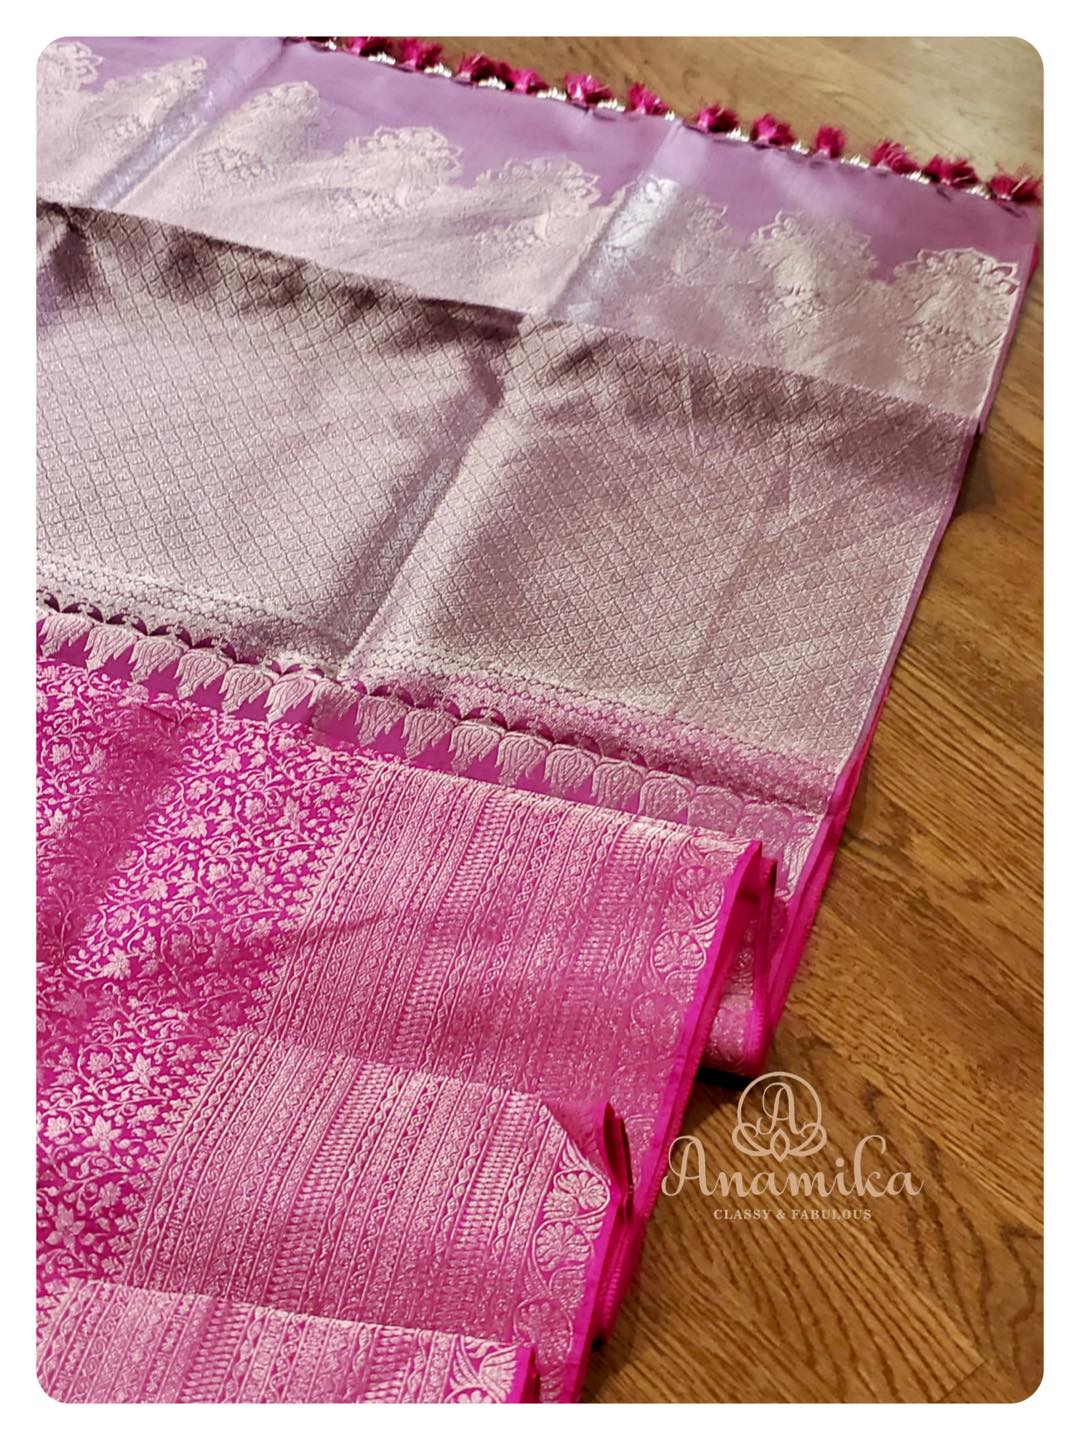 A kanchipattu saree in a nice pink shade .. adorned with silver zari weaving all over.  Paired with a contrast off white blouse with silver embroidery .. you will for sure look like a Diva in this ensemble!! DM 360-545-3636 for inquiries 2021-09-18